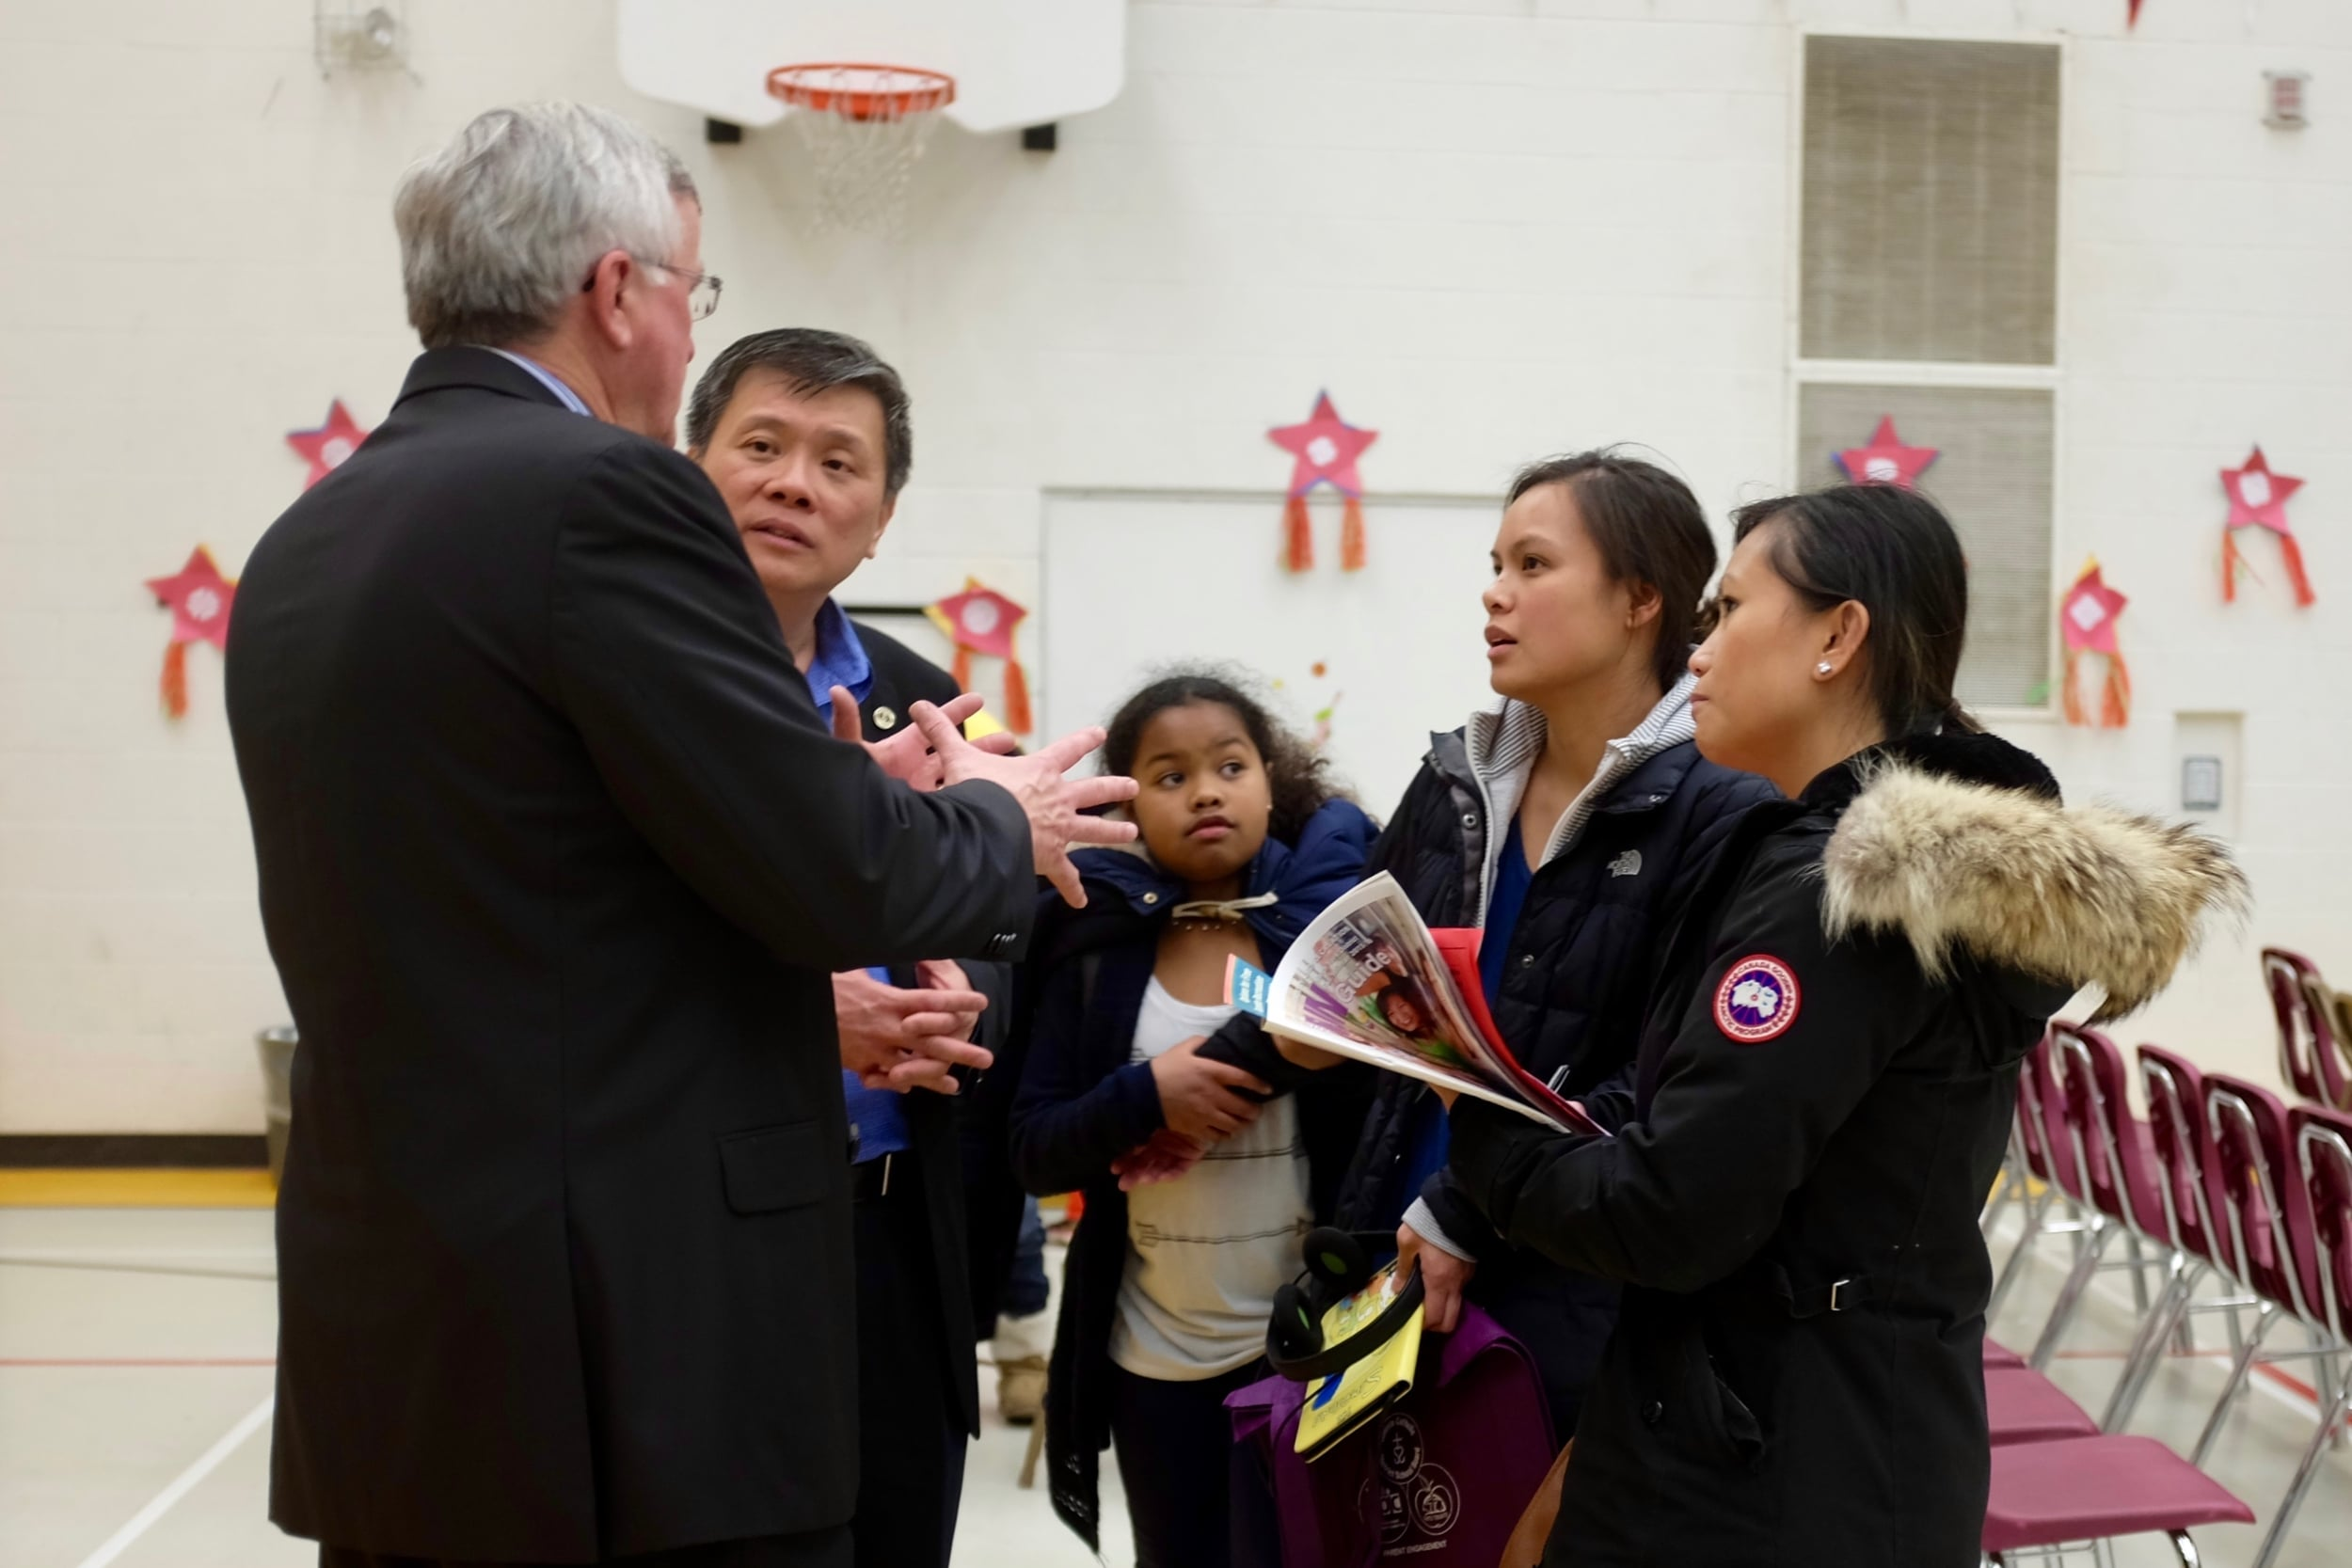 Superintendent John Shain speaks with Trustee Gerry Tanuan, Jerrylyn Gueverra and Judith Cortez at a TCDSB Filipino Christmas event.